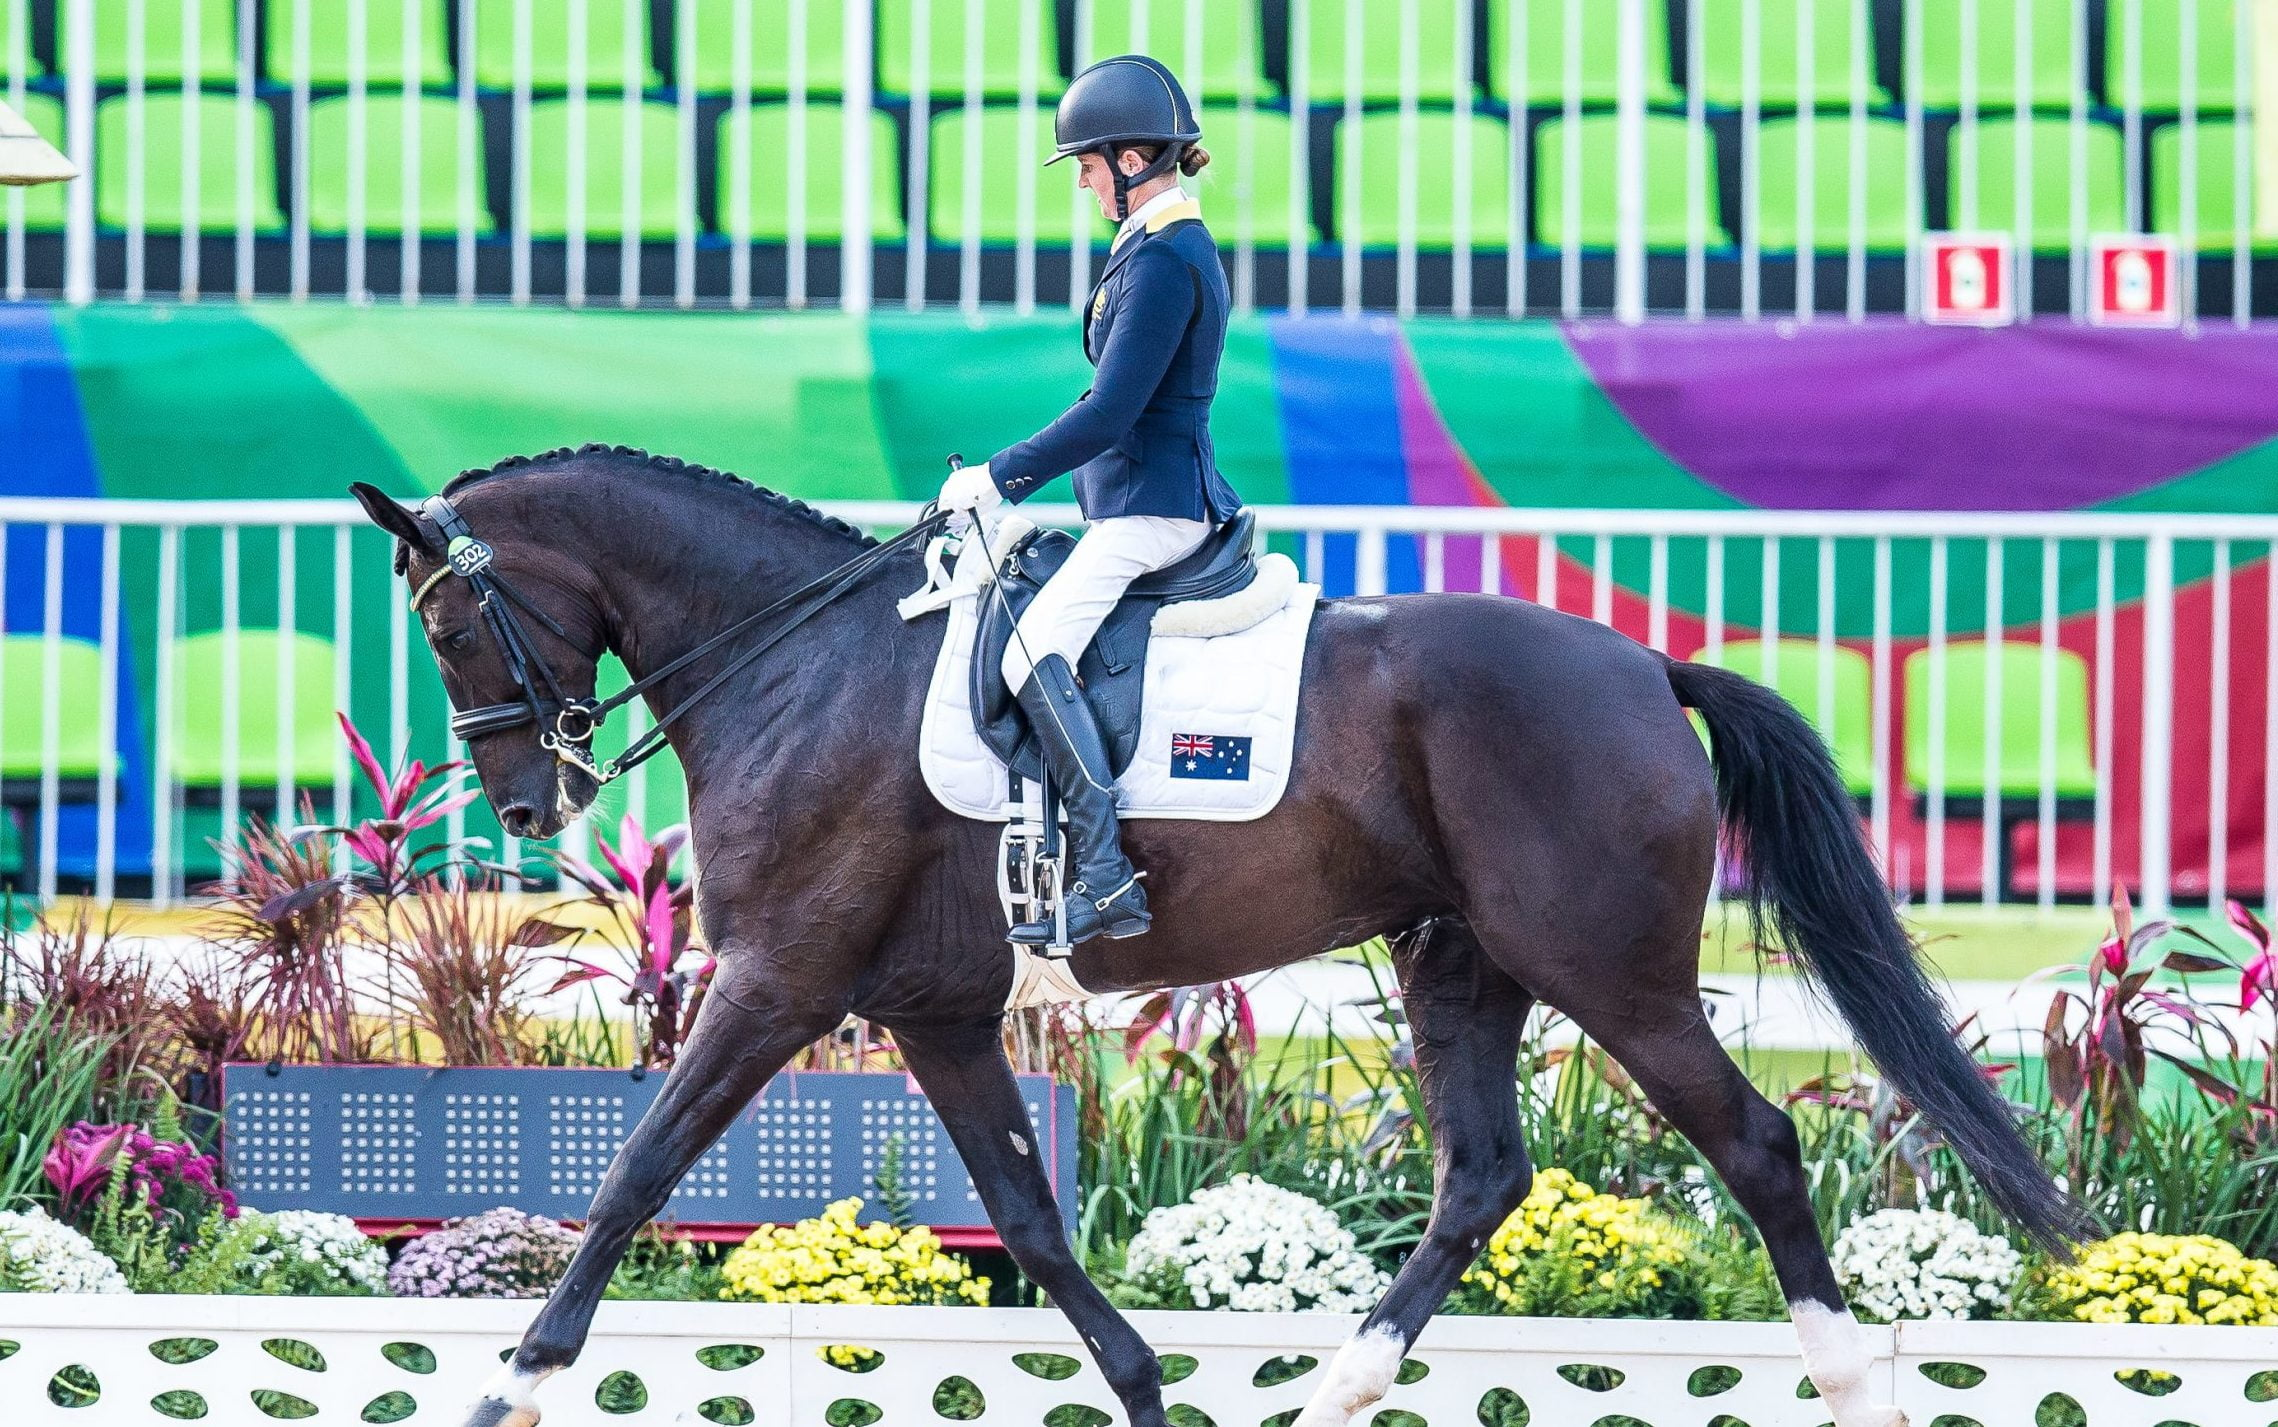 Test Event prepares riders for Tokyo 2020 success